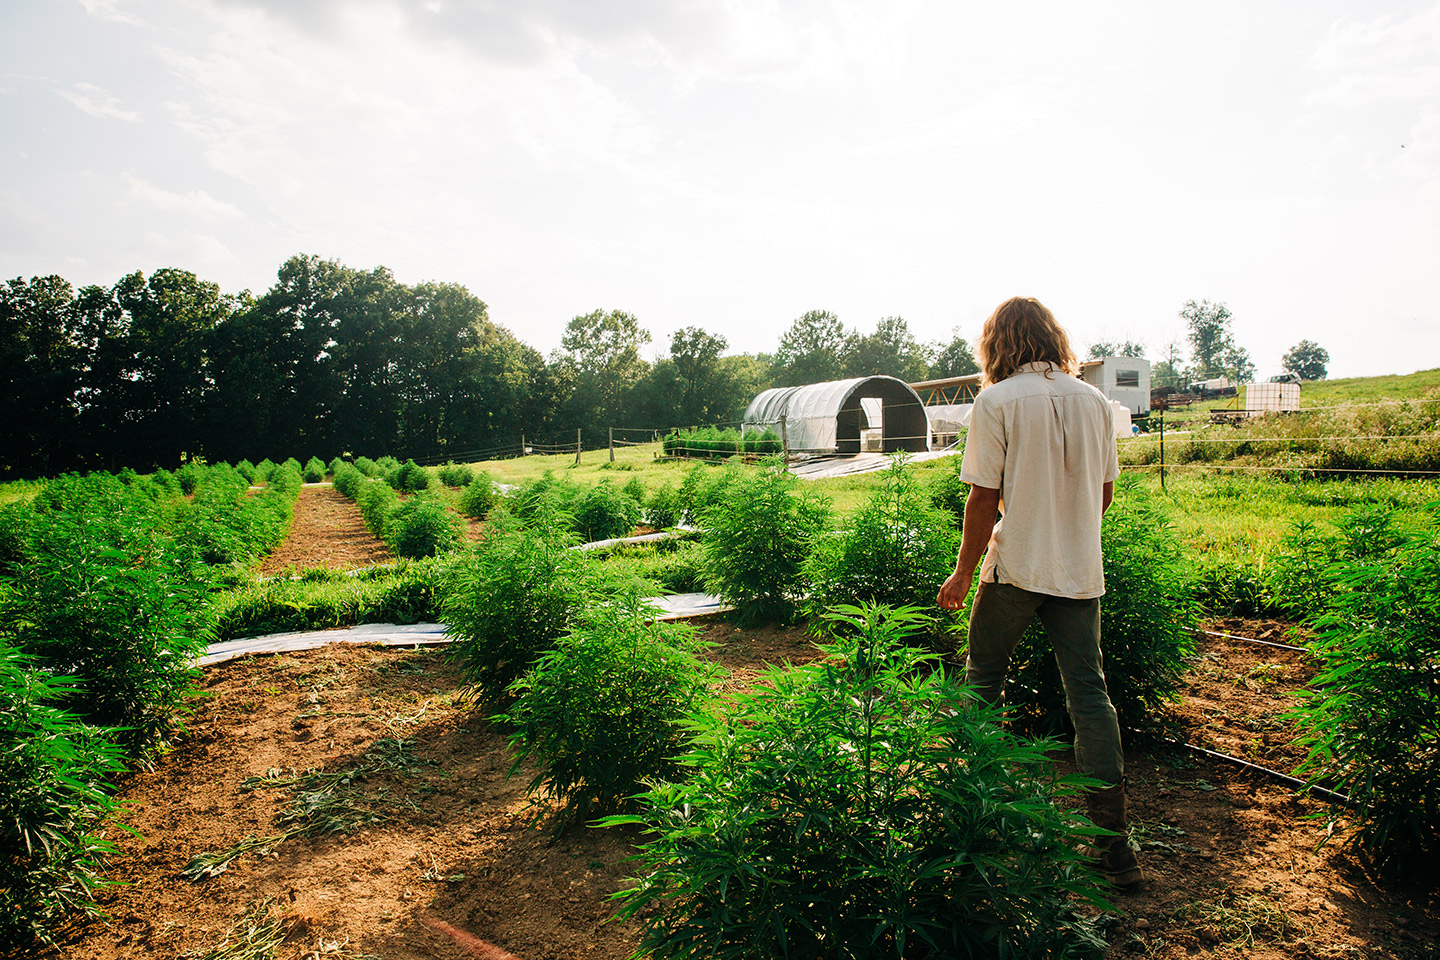 hemp field and hoophouse